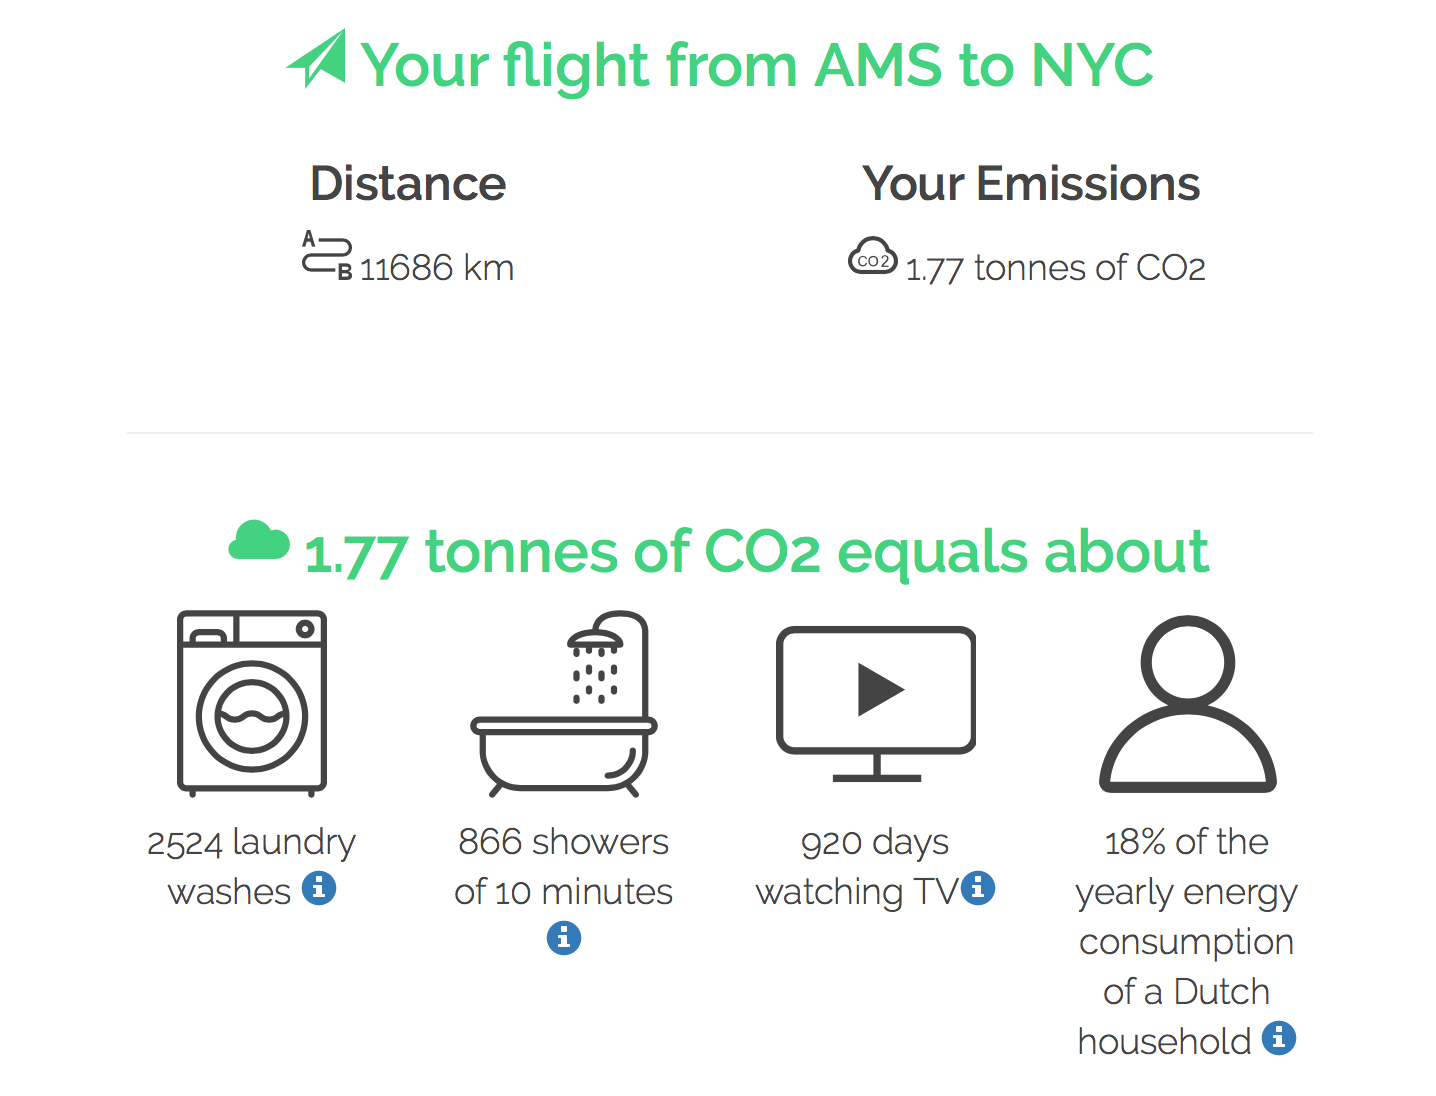 you can calculate the carbon emissions of your flight at FlyGRN. This flight from Amsterdam to New York City equals almost 2 tonnes of CO2.